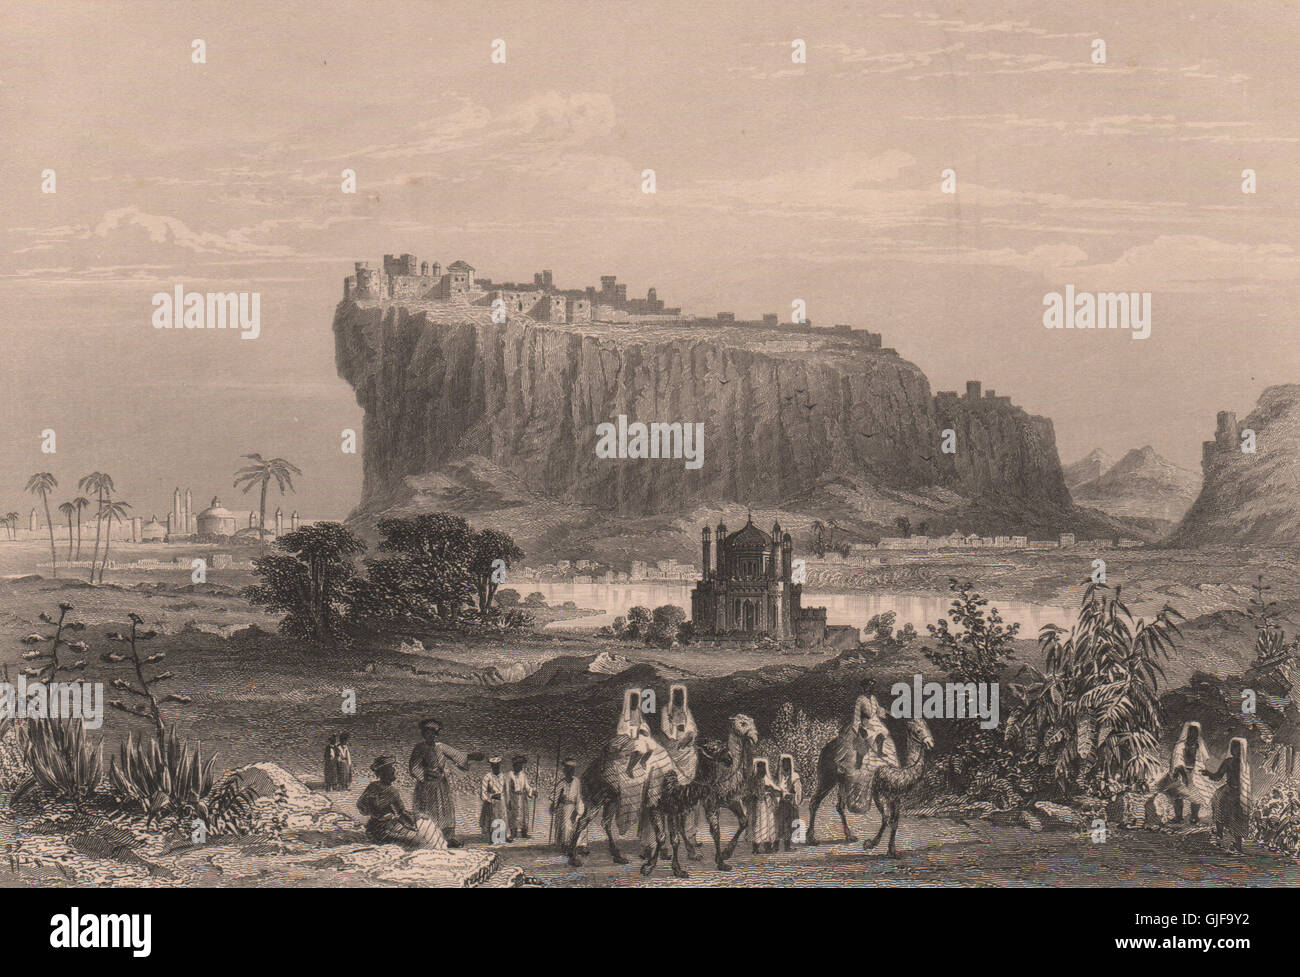 BRITISH INDIA The Fortress of Daulatabad in the Deccan 1858 old antique print